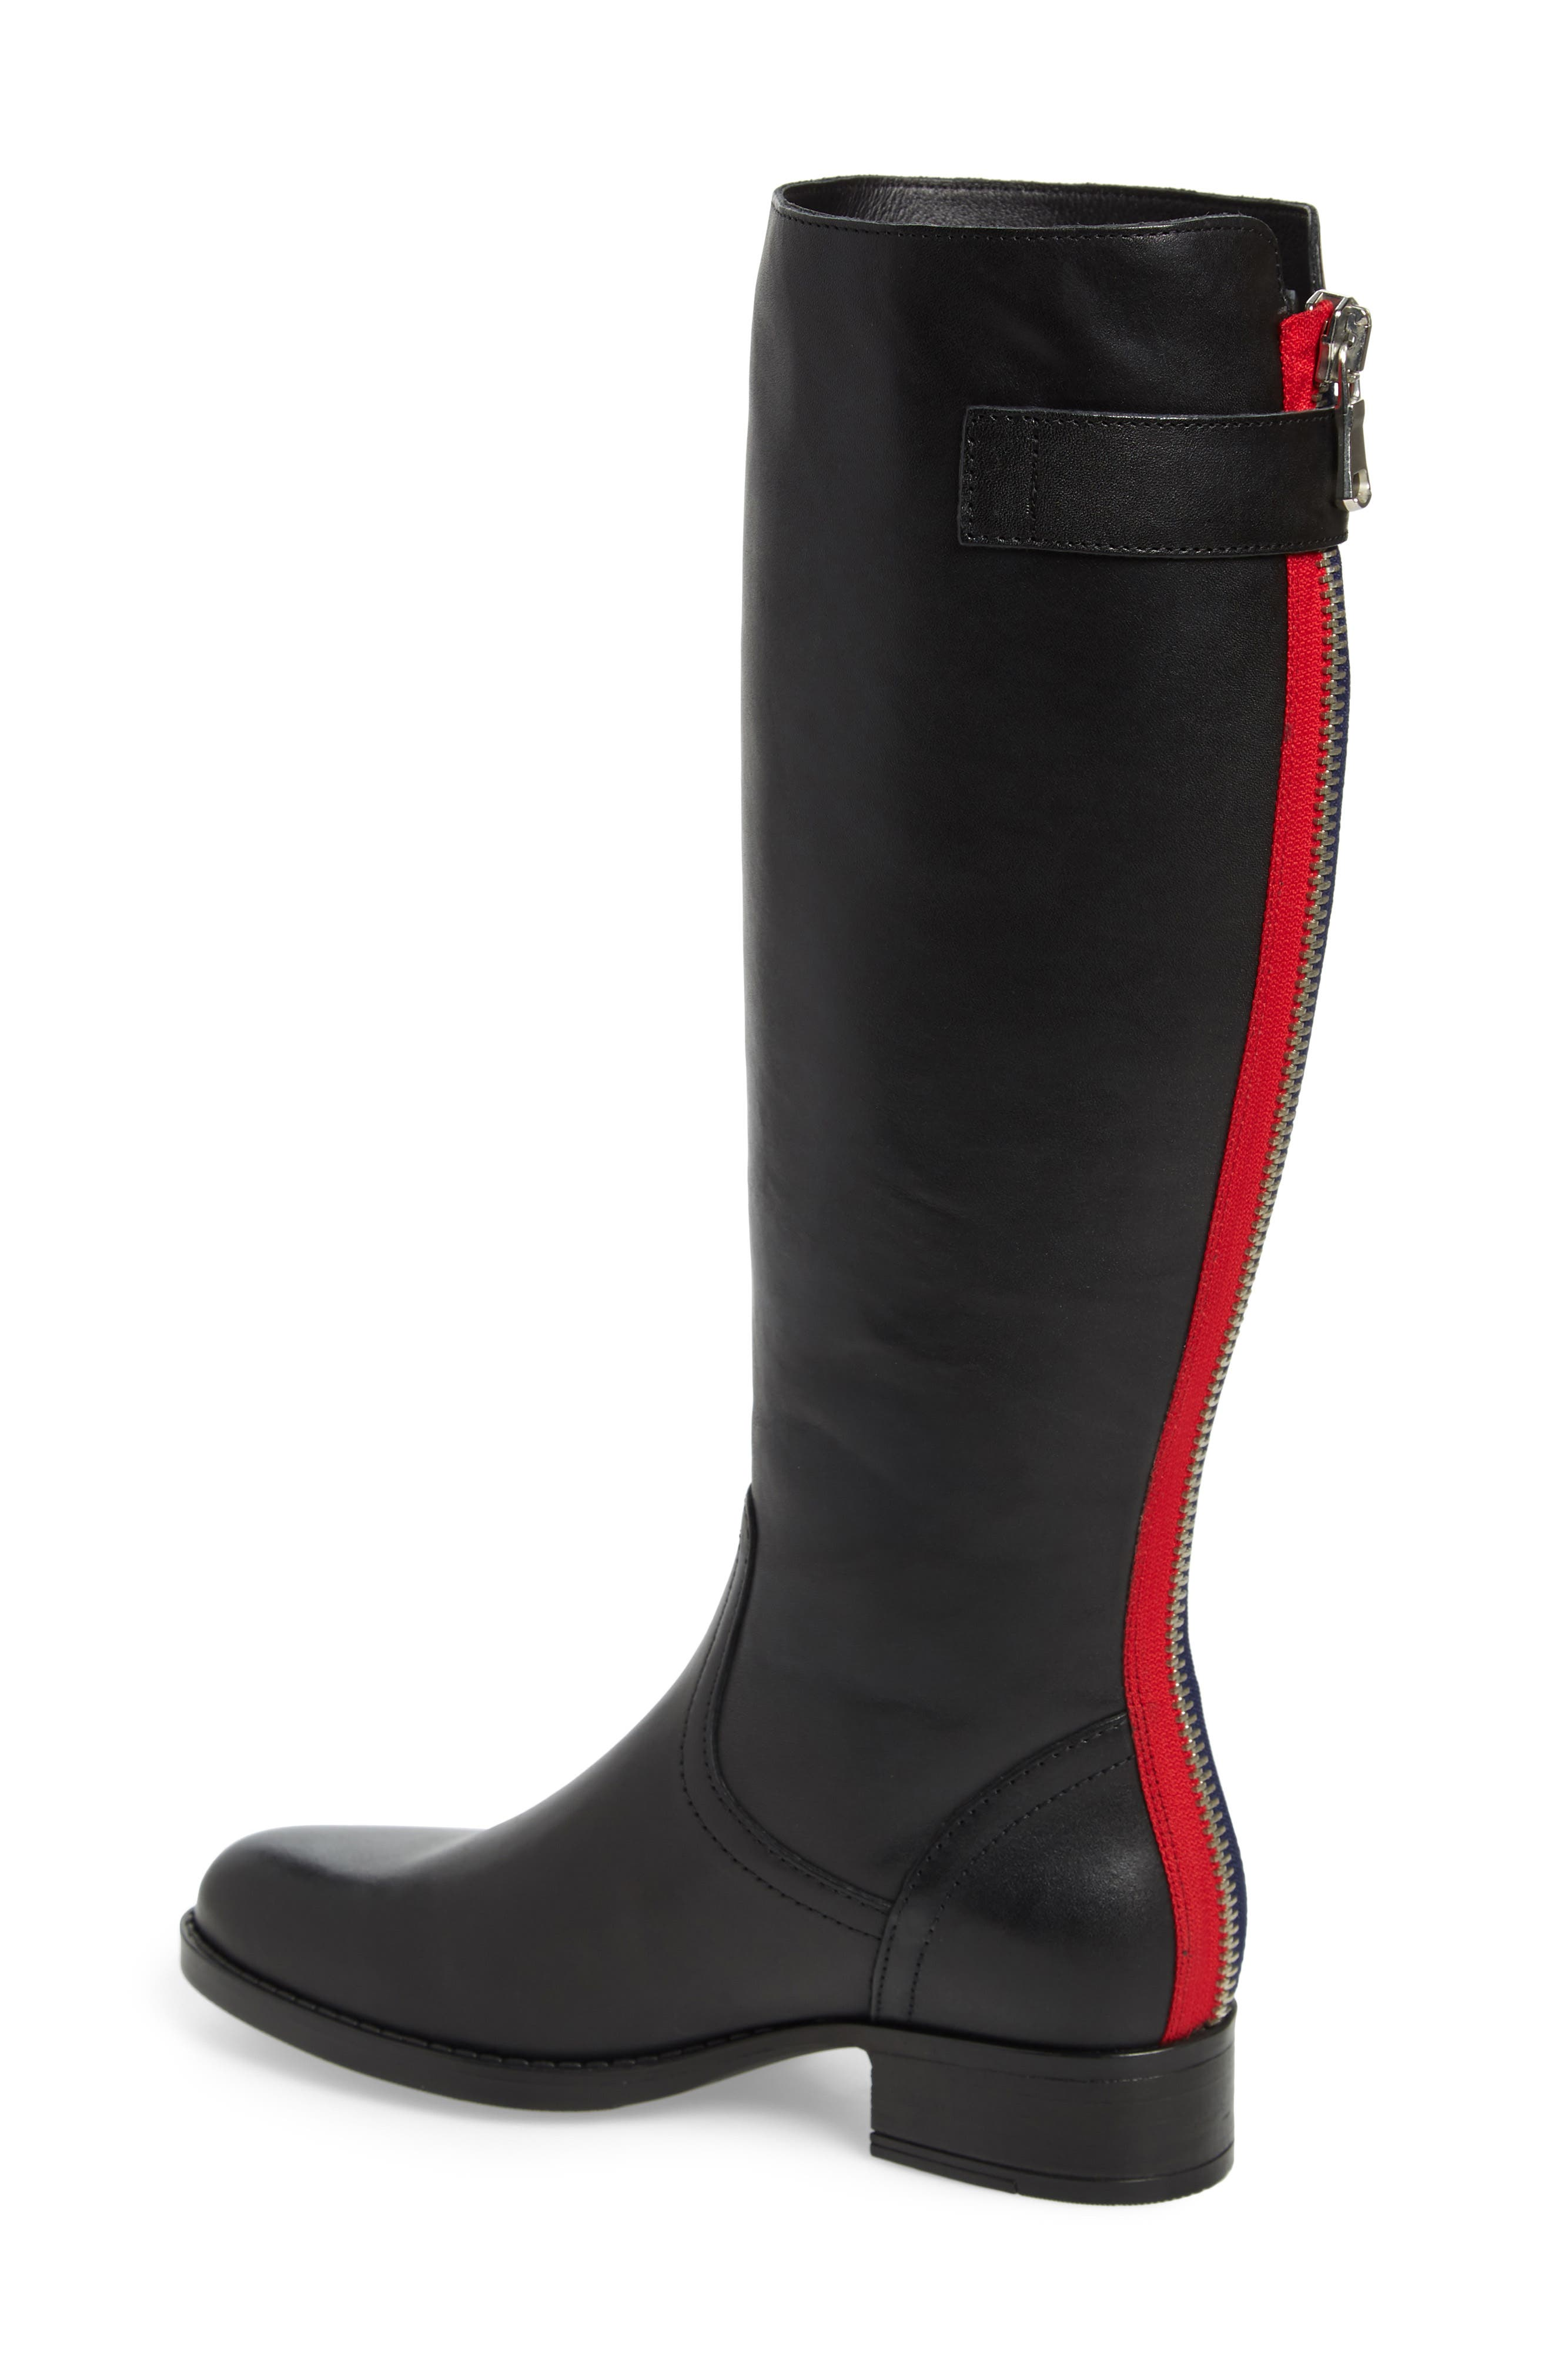 Journal Knee High Boot,                             Alternate thumbnail 2, color,                             BLACK LEATHER